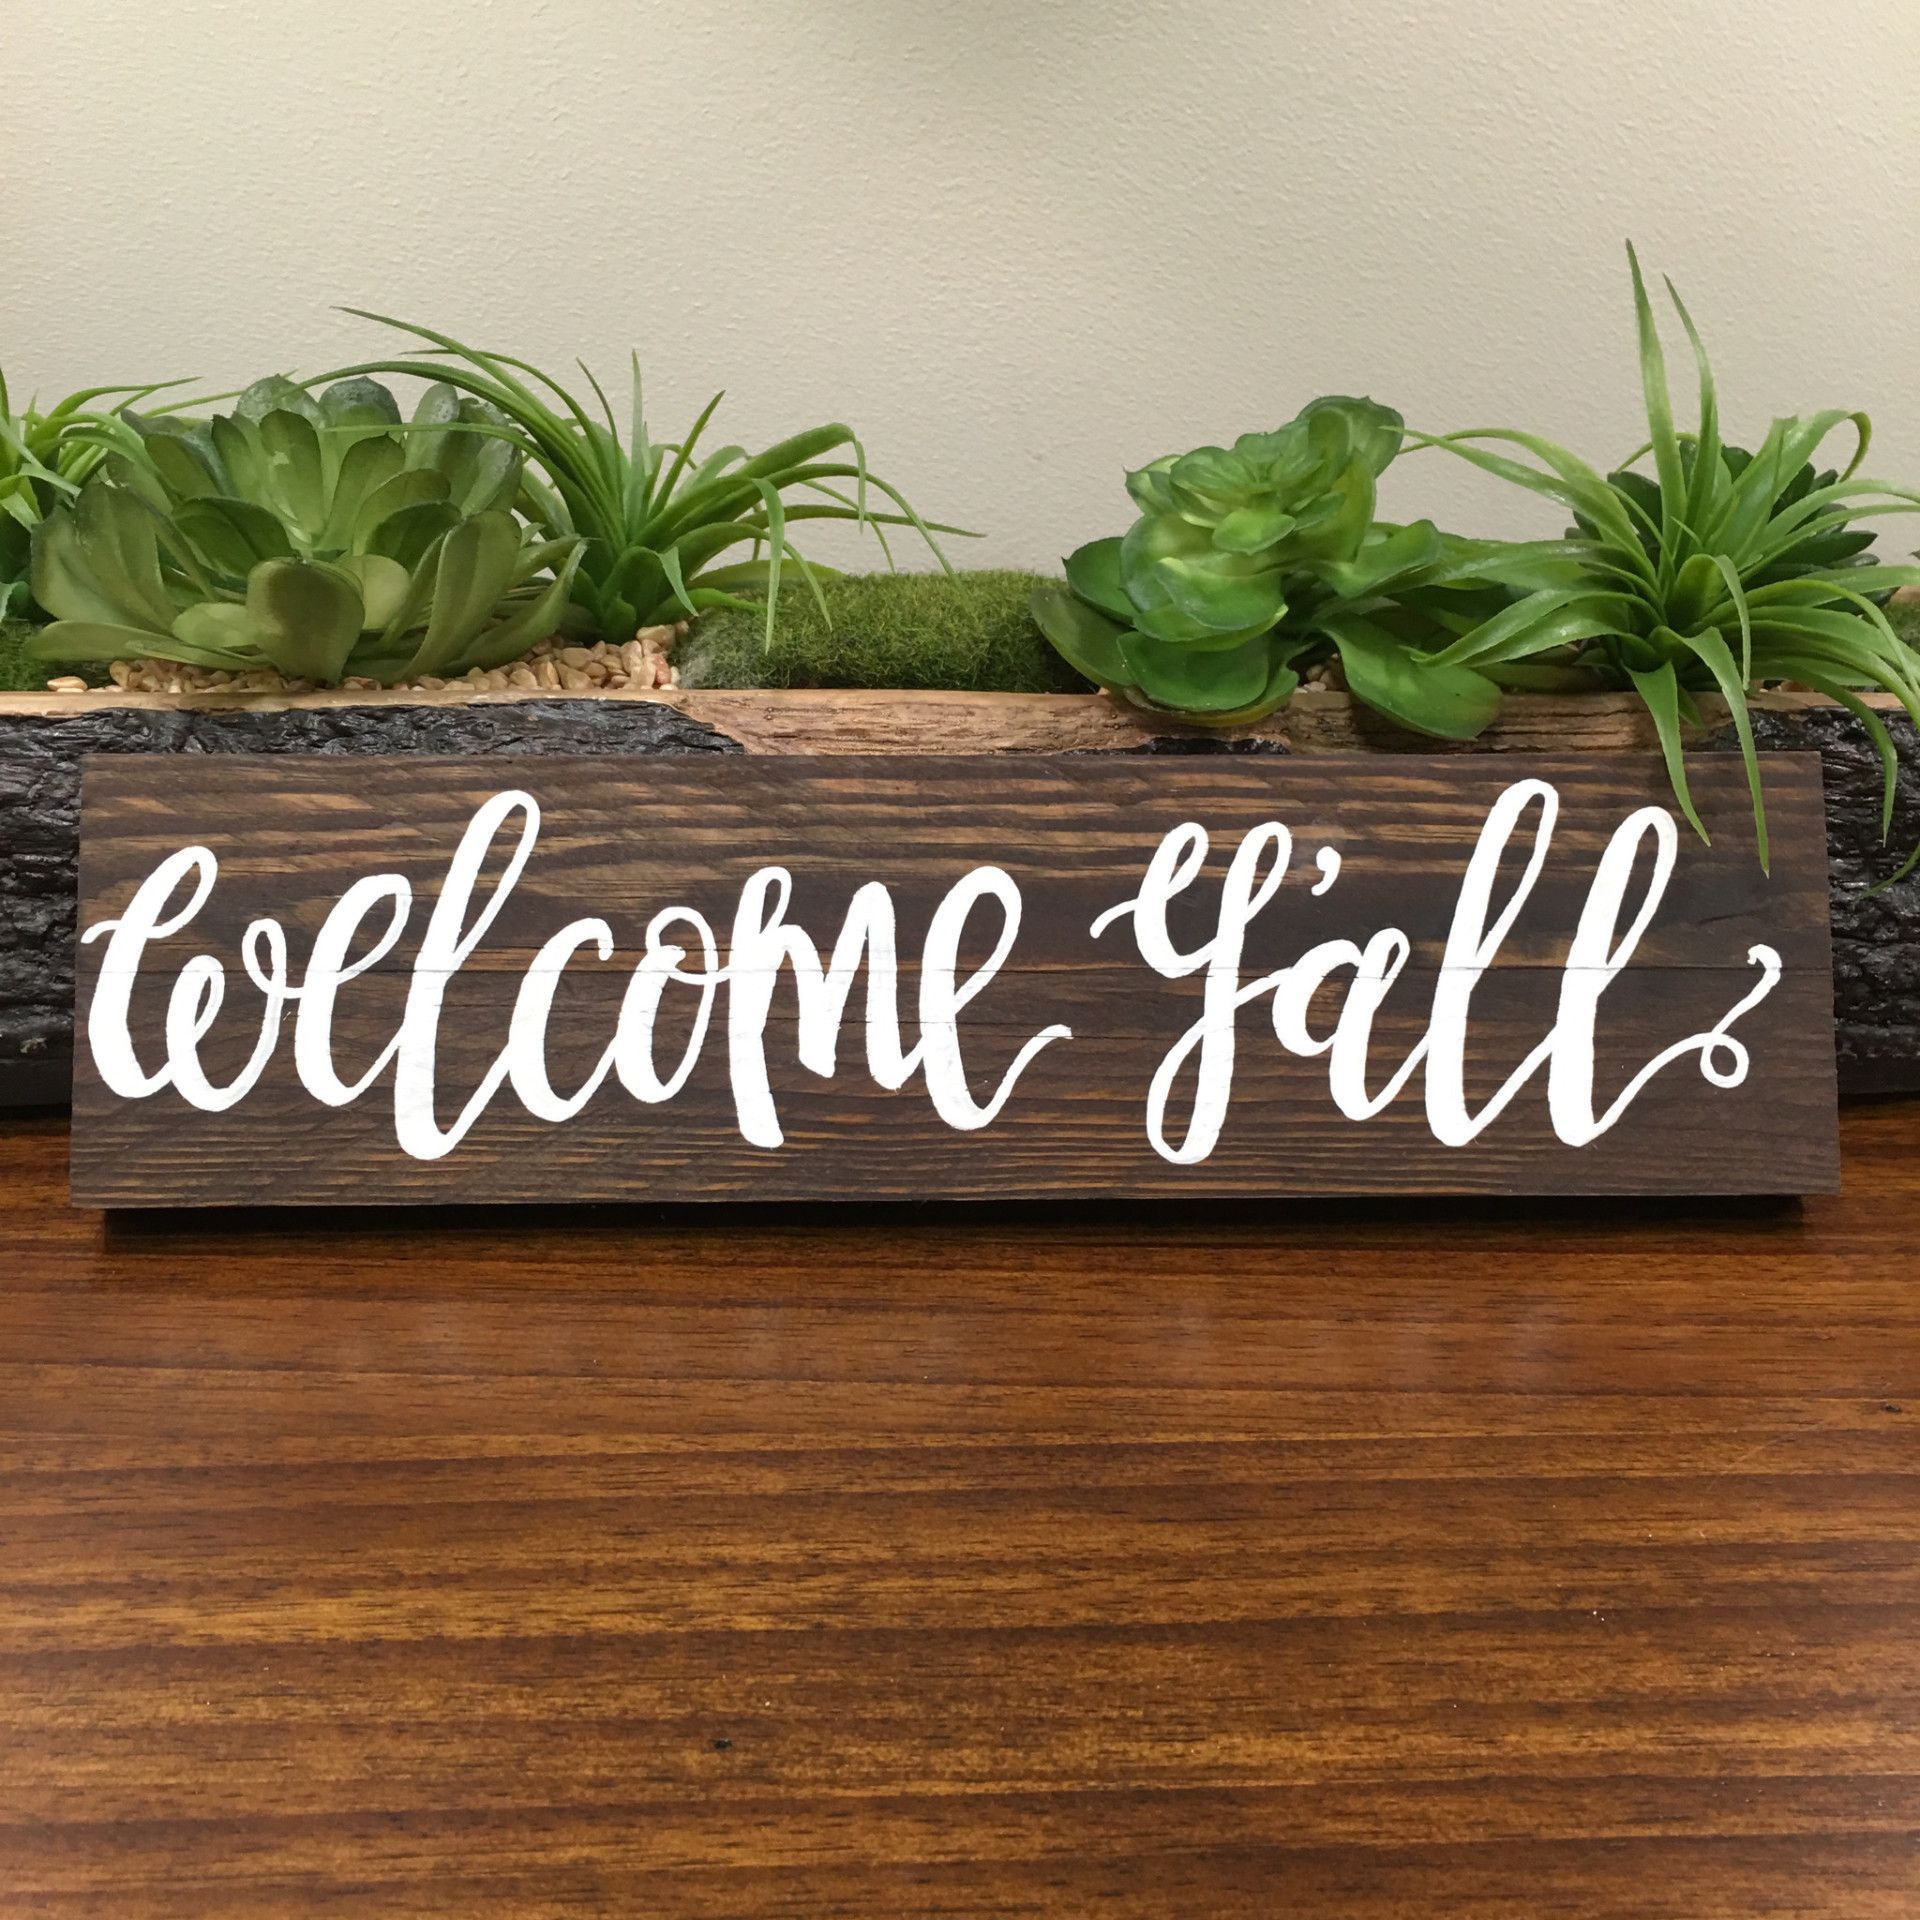 welcome signs diy - HD1920×1920